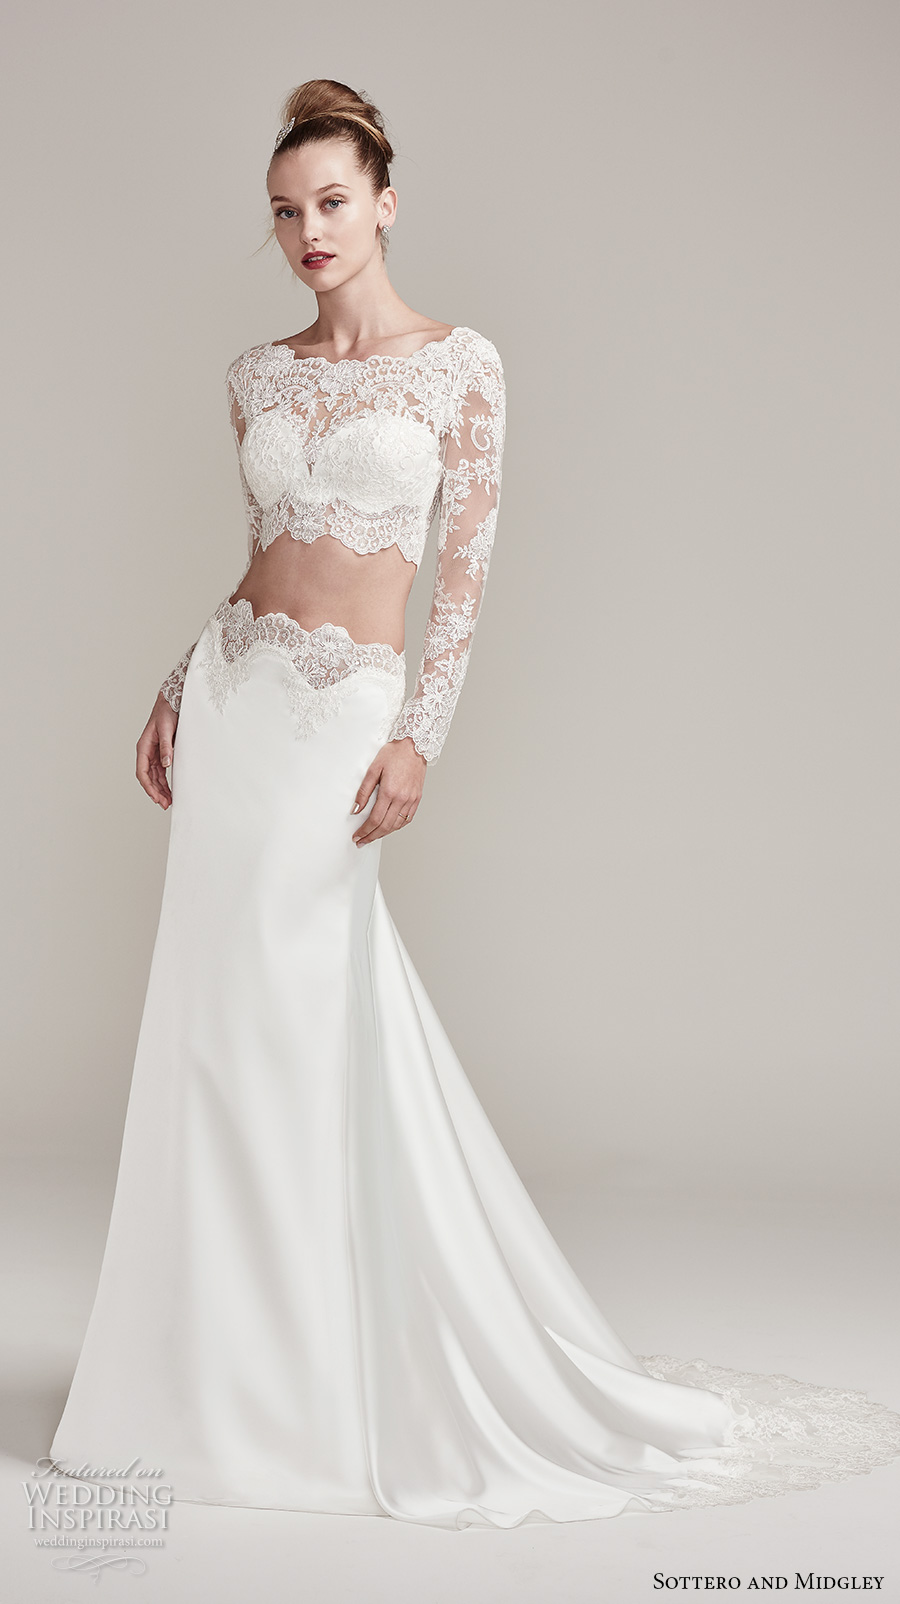 Sottero and midgley fall 2016 wedding dresses am lie for Crop top wedding dress